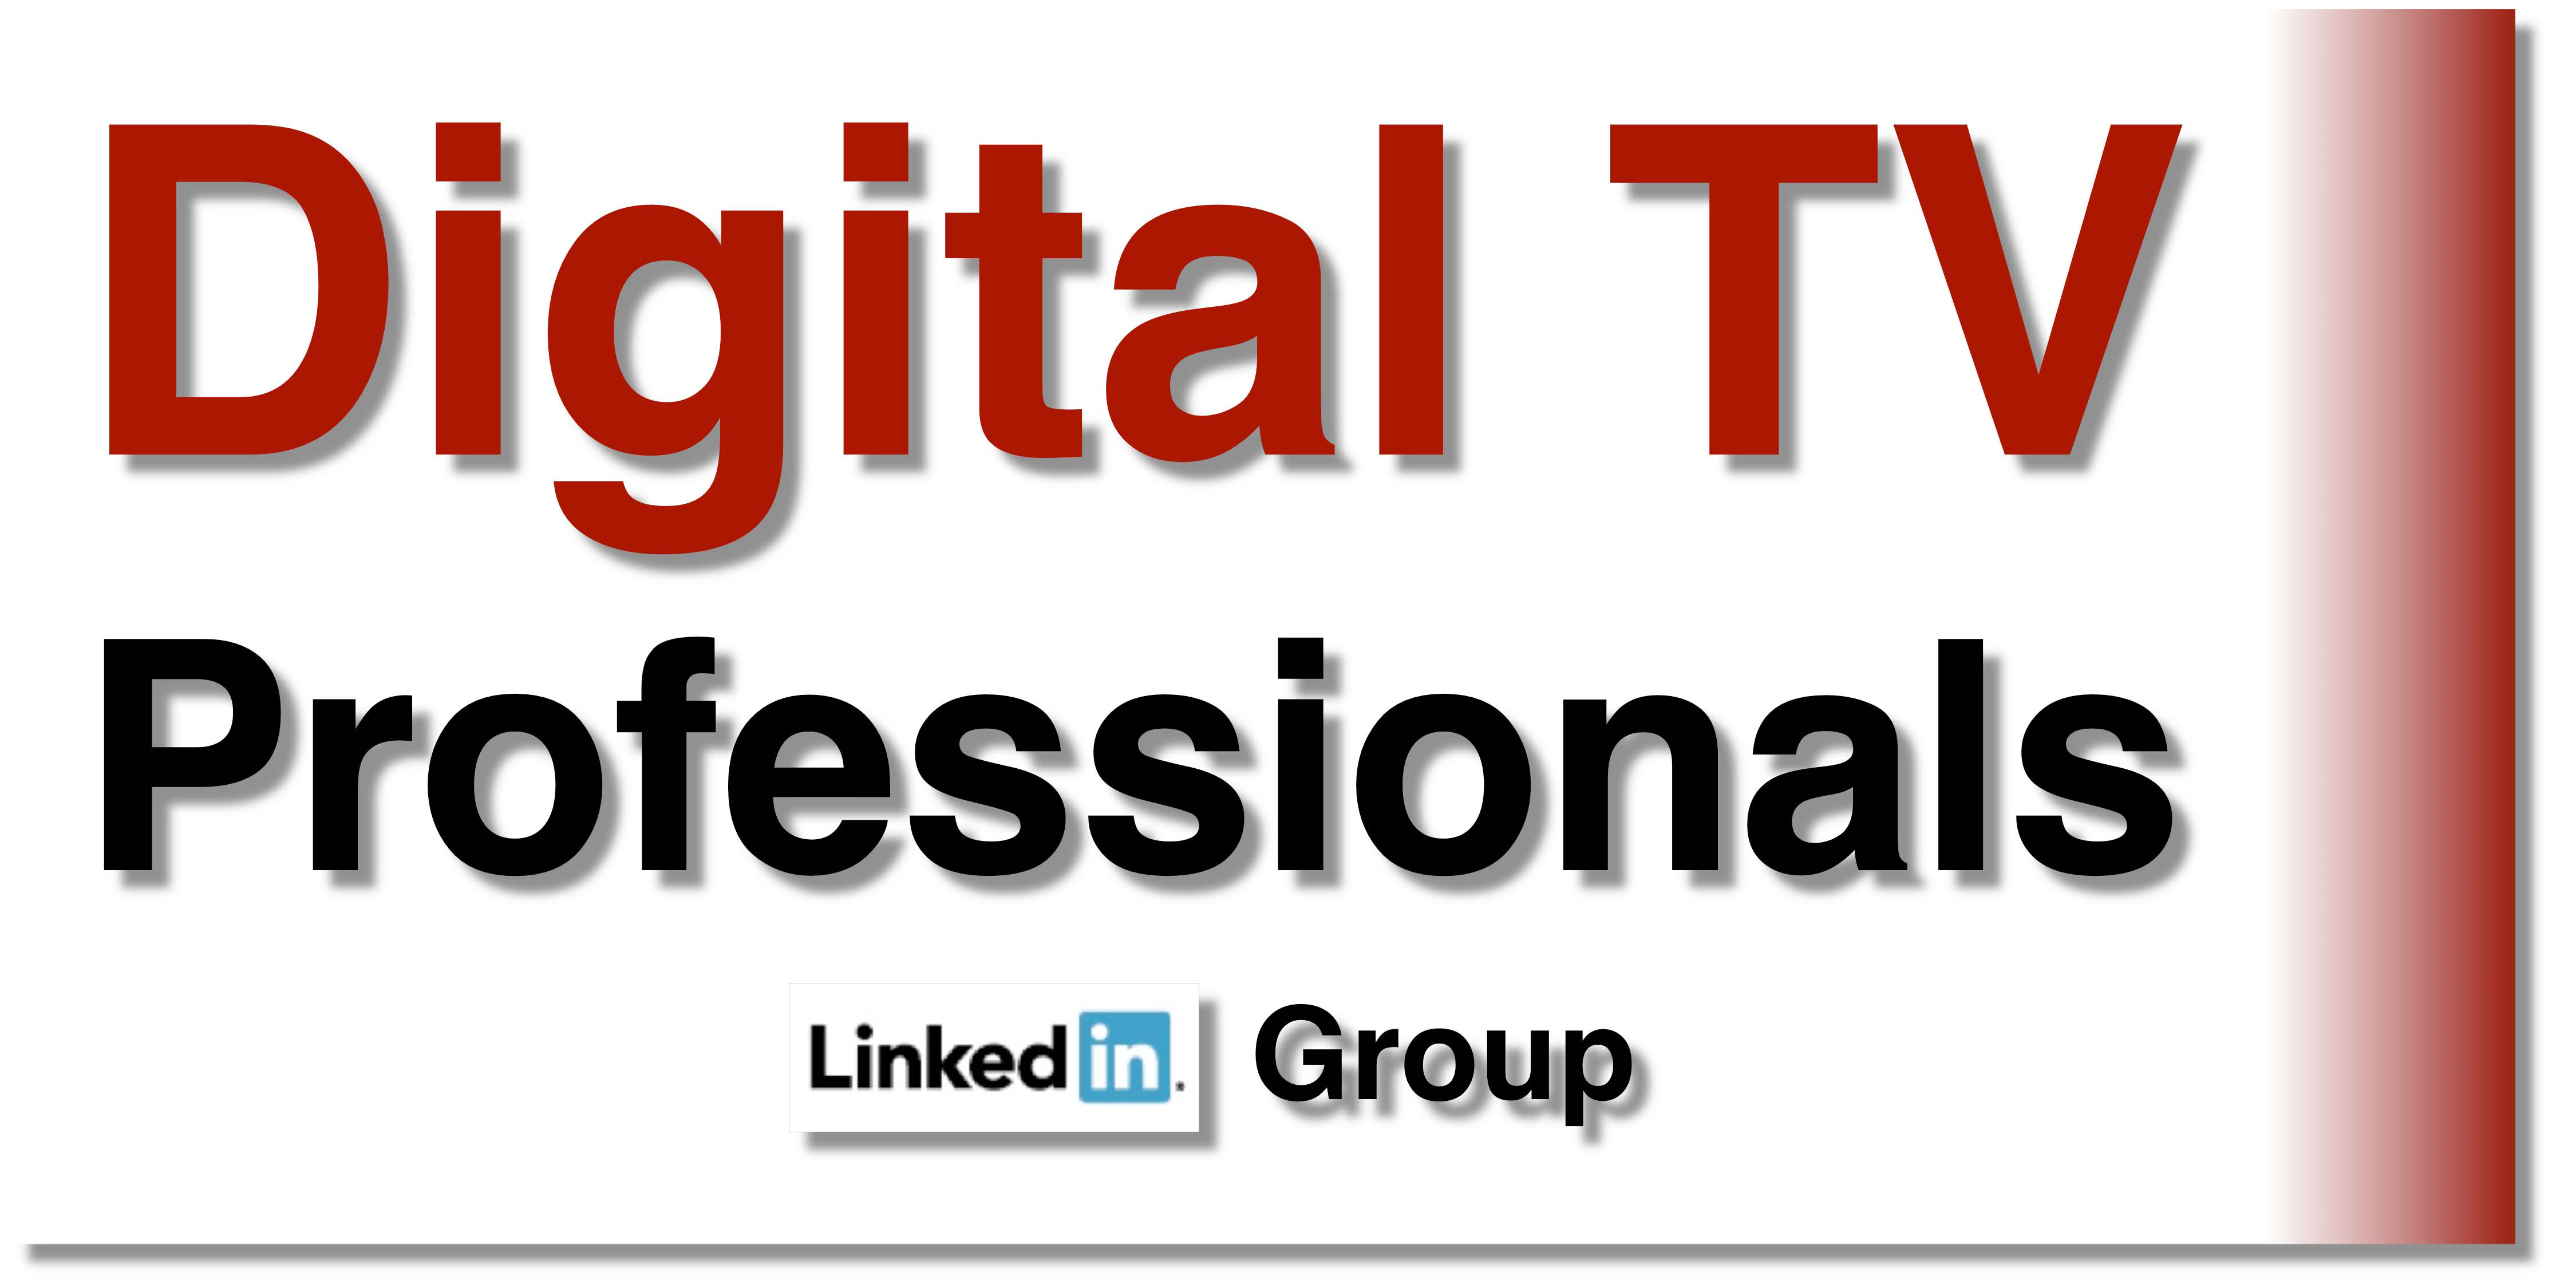 Digital TV Professionals